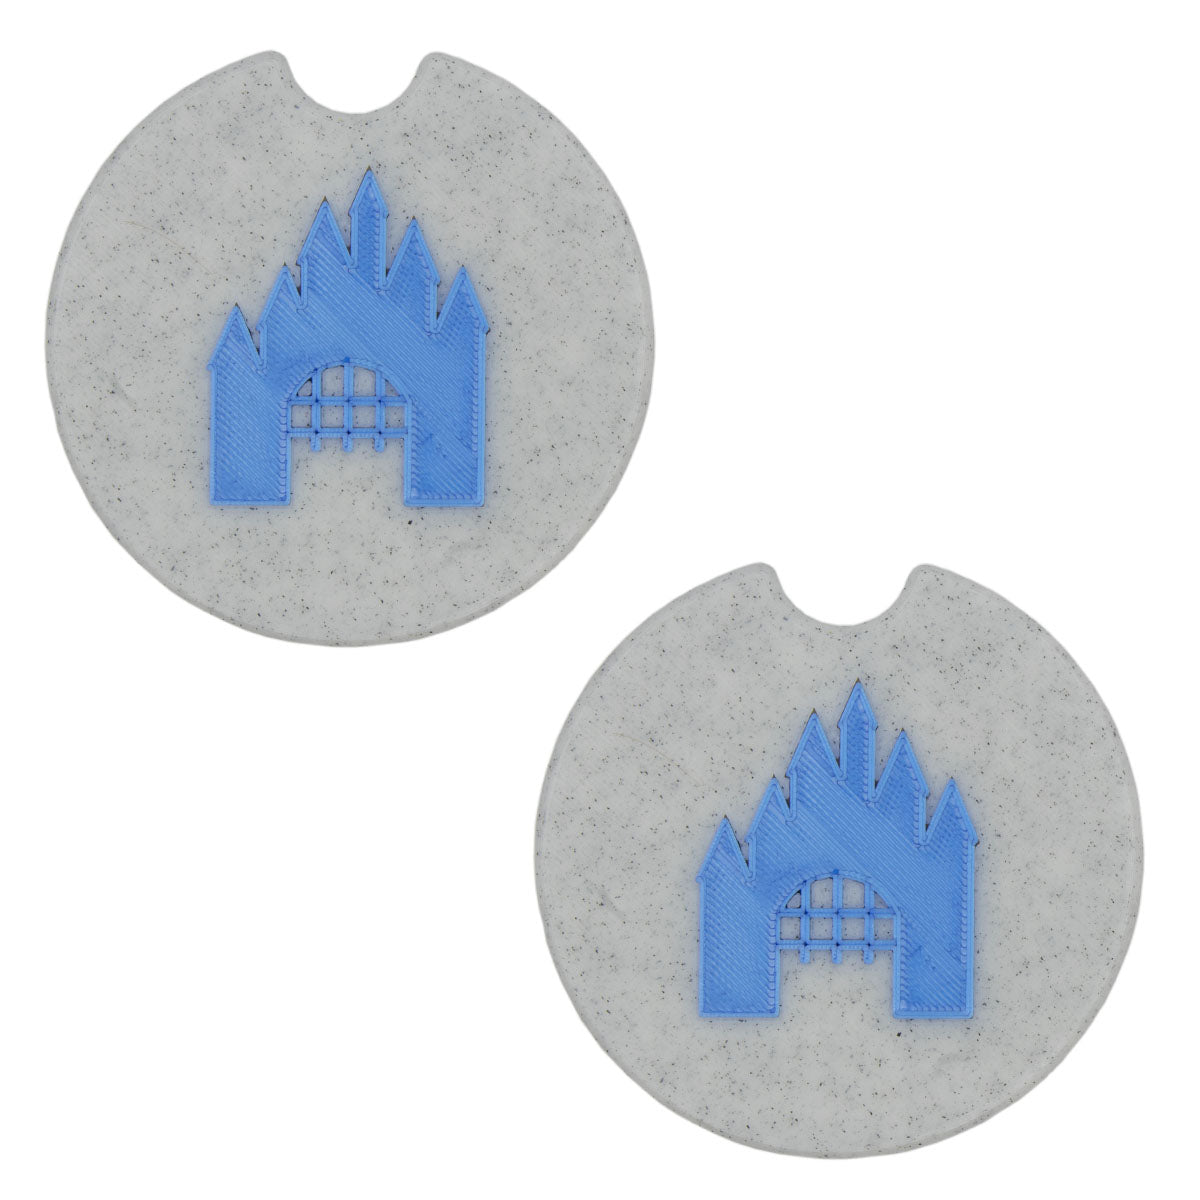 Castle Car Coasters - Set of 2